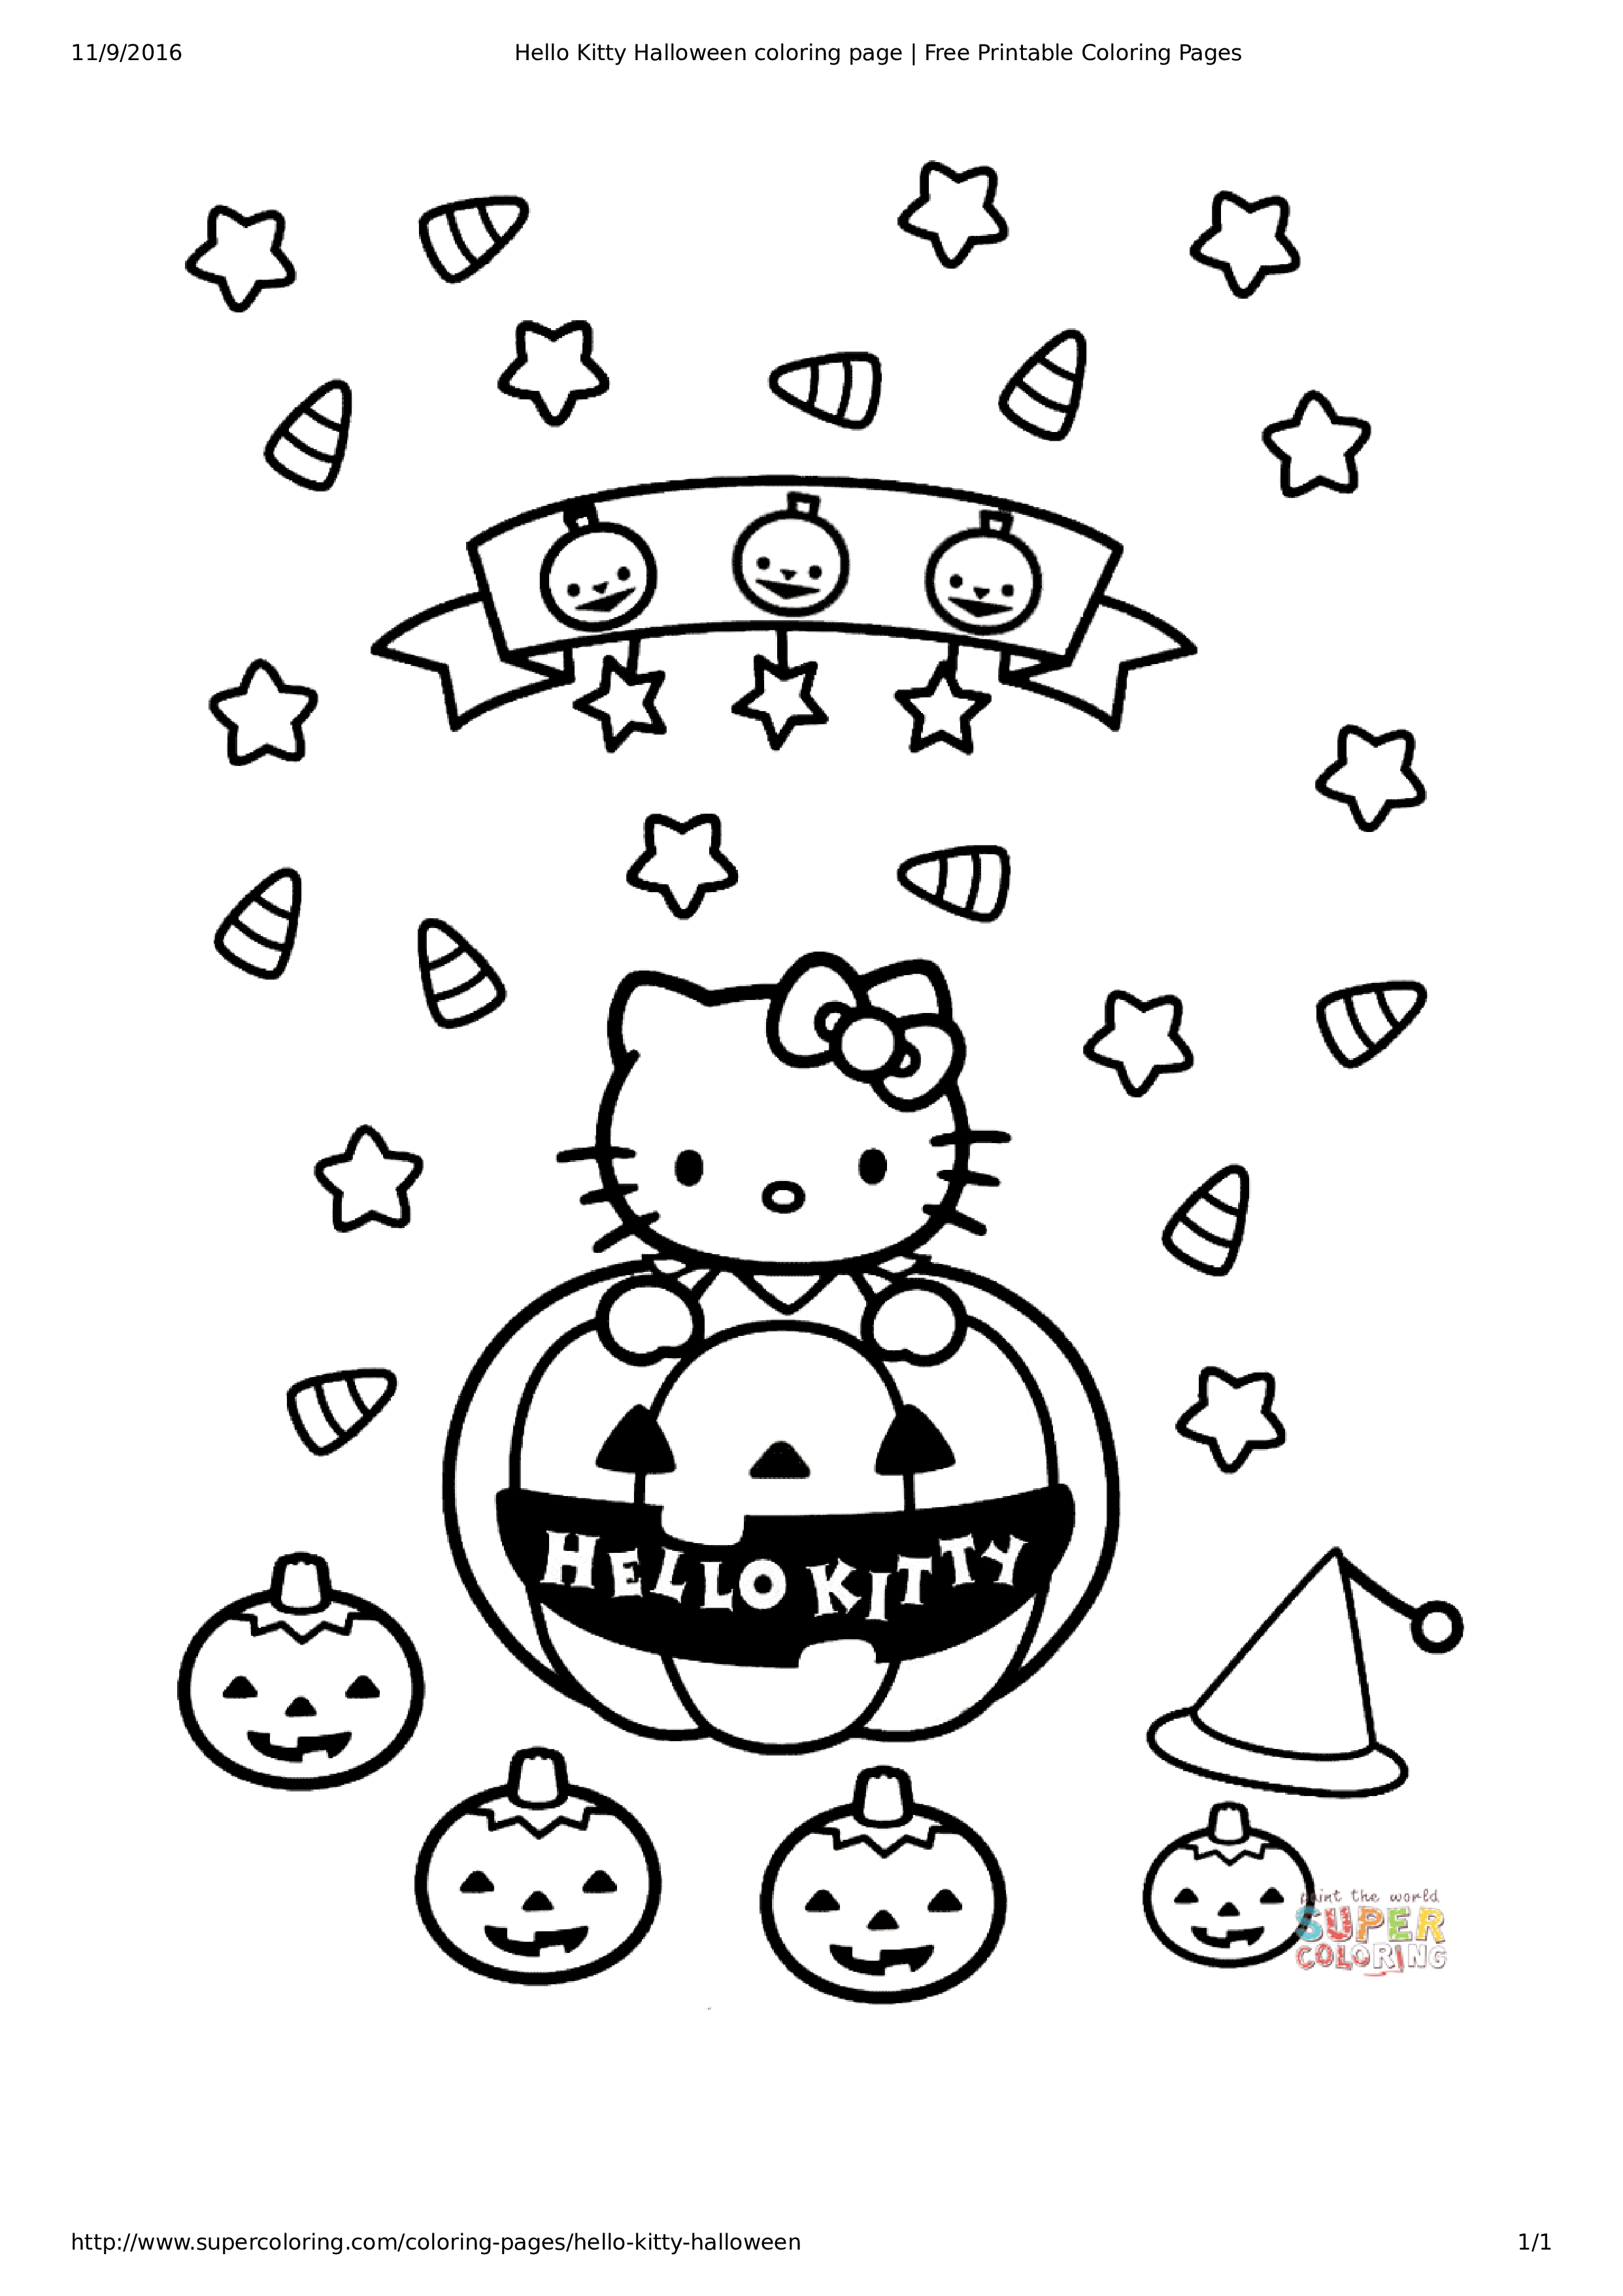 Hello Kitty Christmas Coloring Pages Free Print With Page Templates At